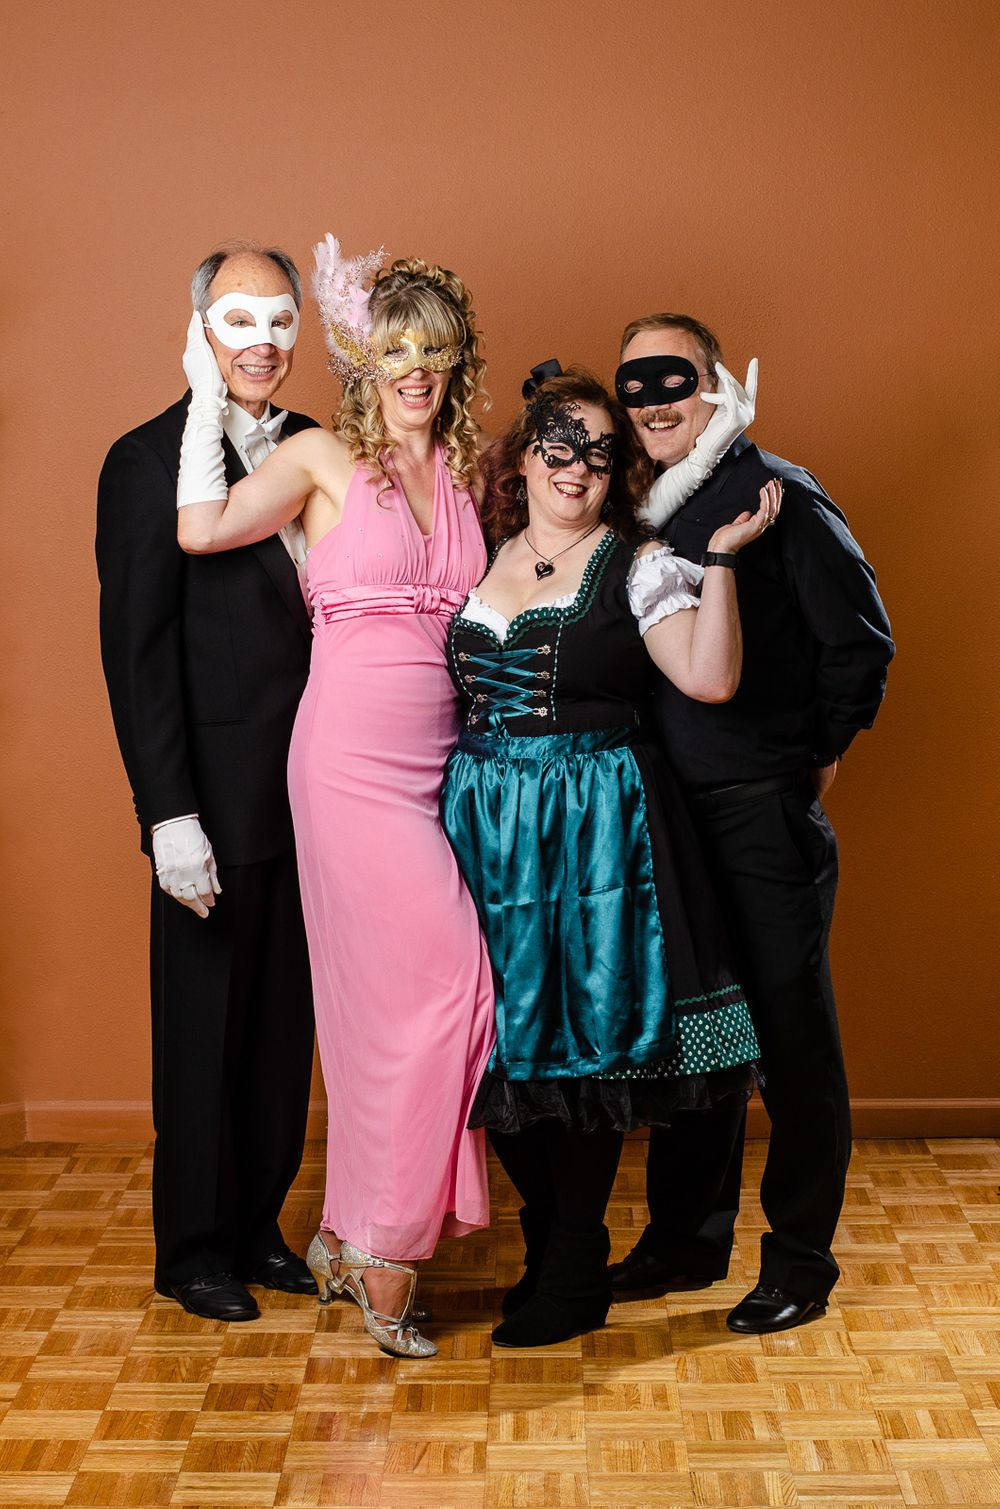 Two couples in costume posing against a wall.